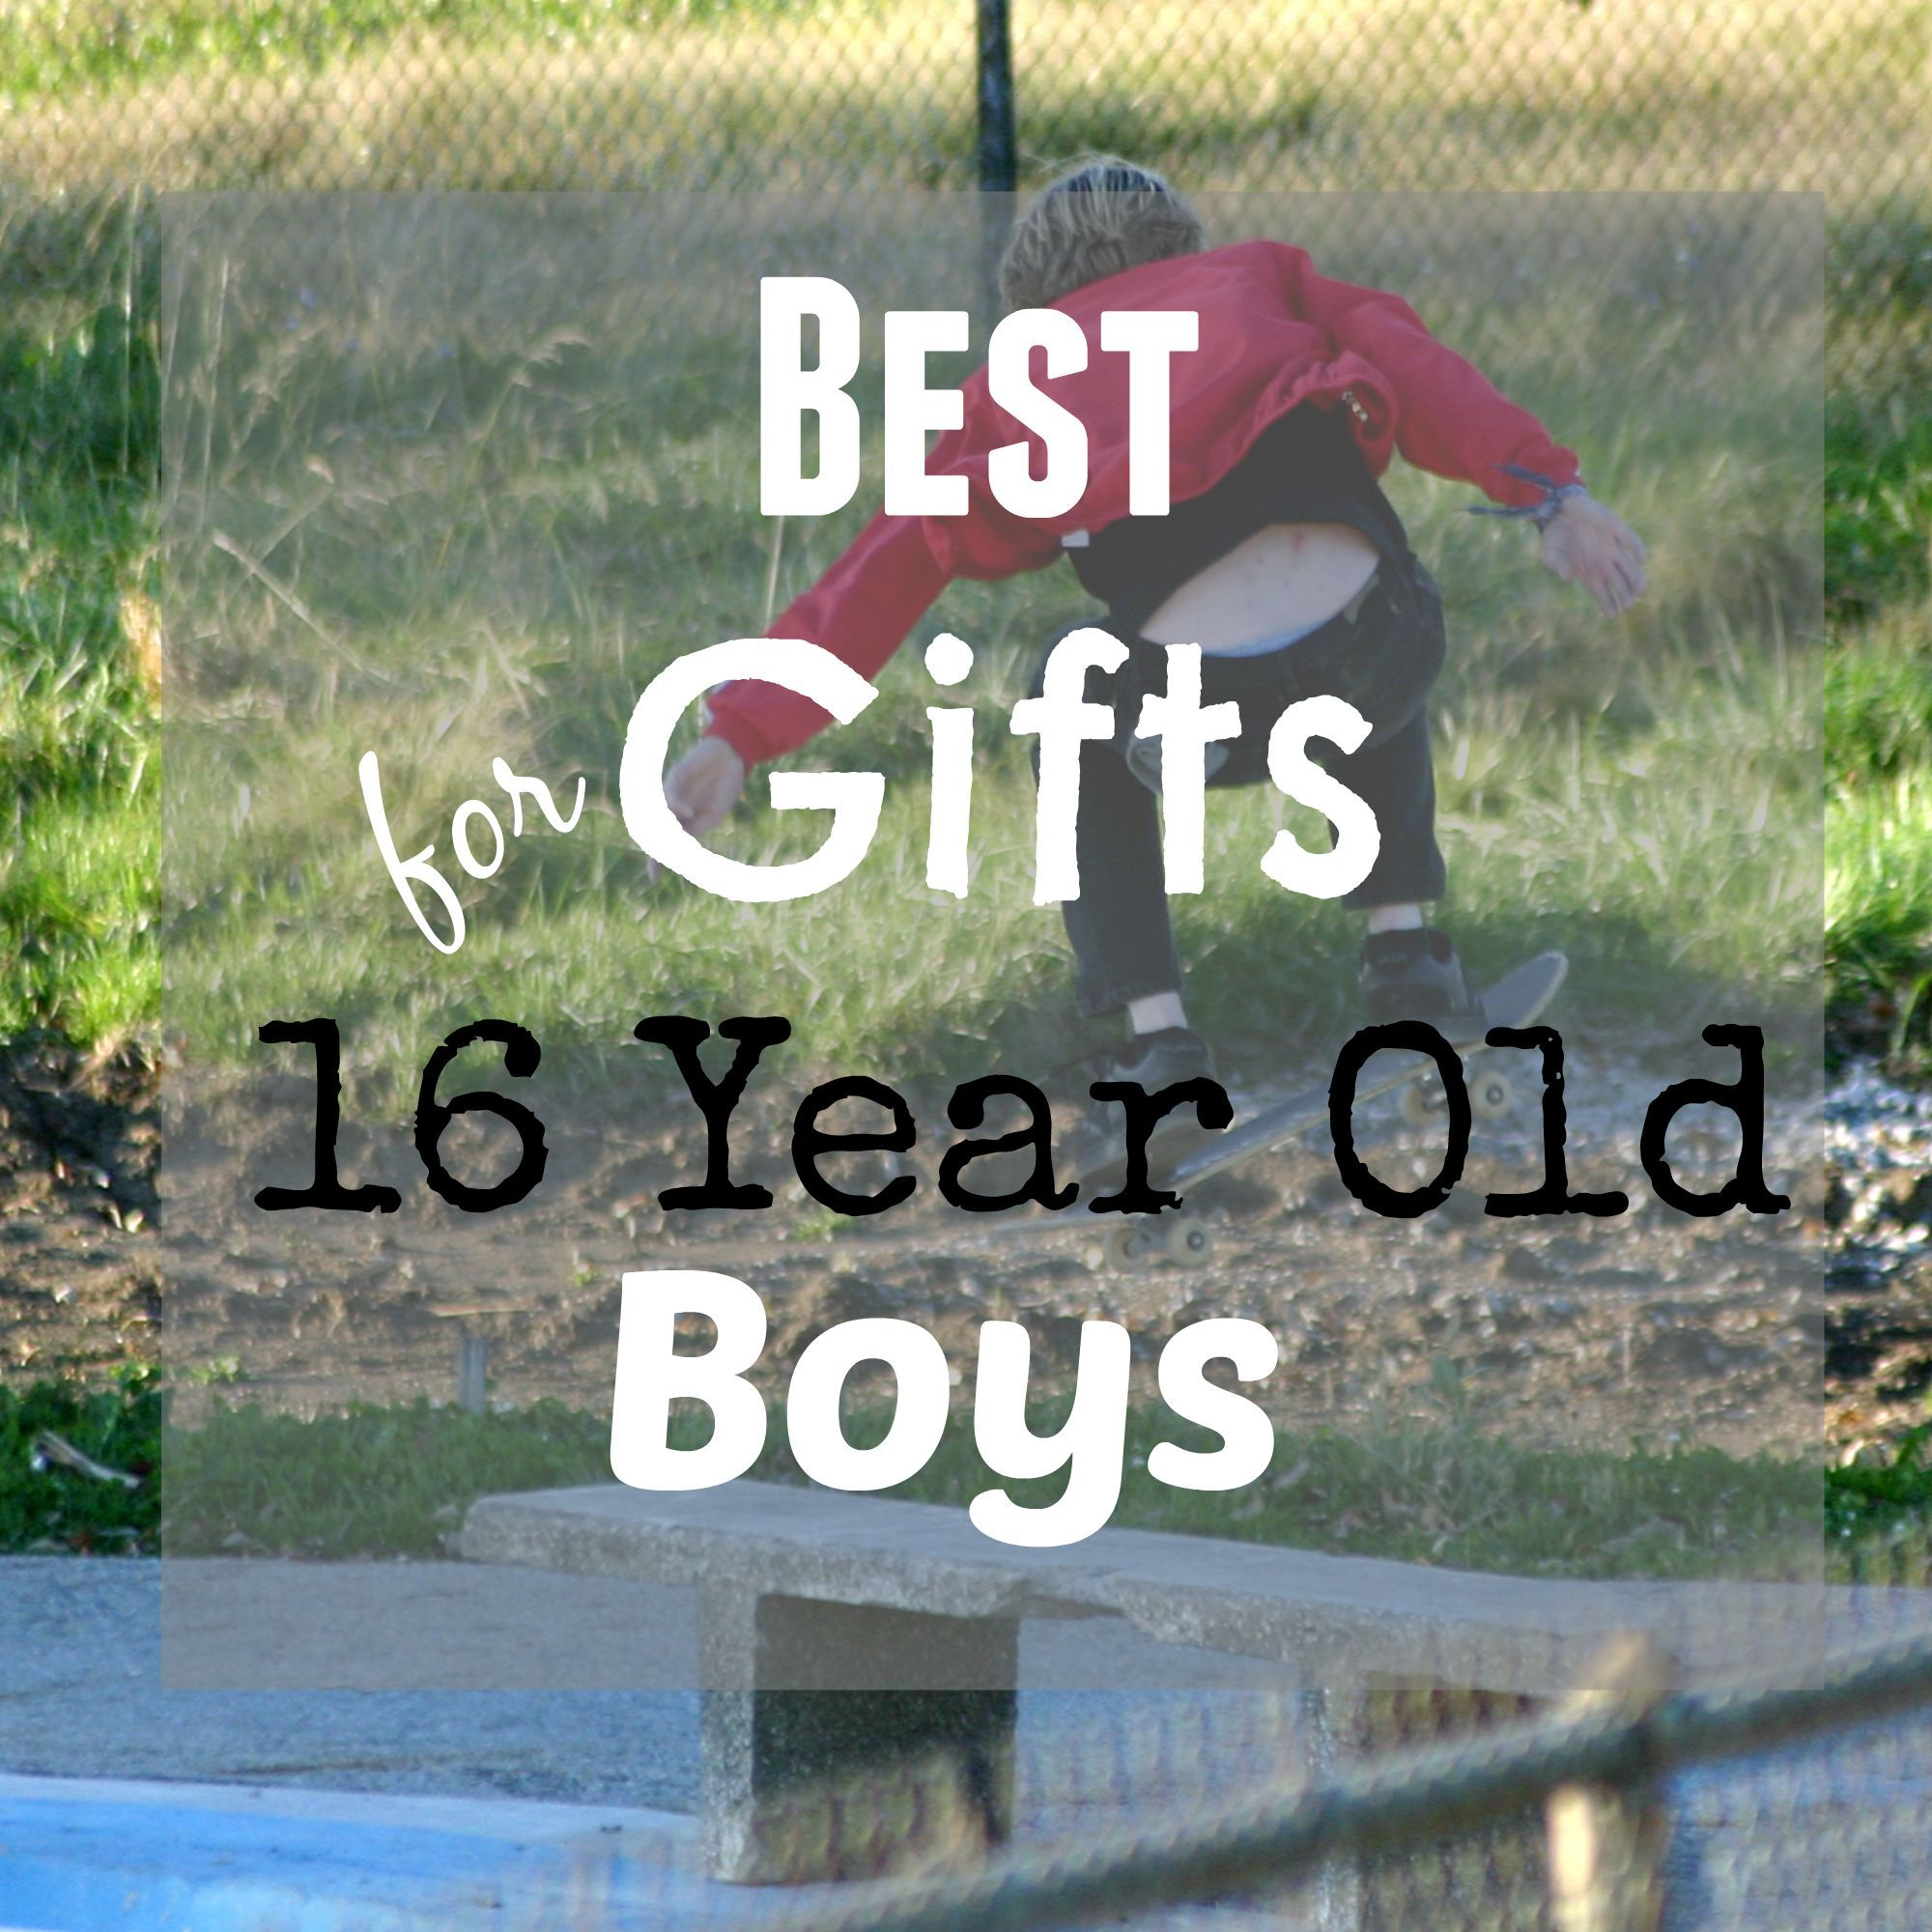 Best Gifts and Toys for 16 Year Old Boys